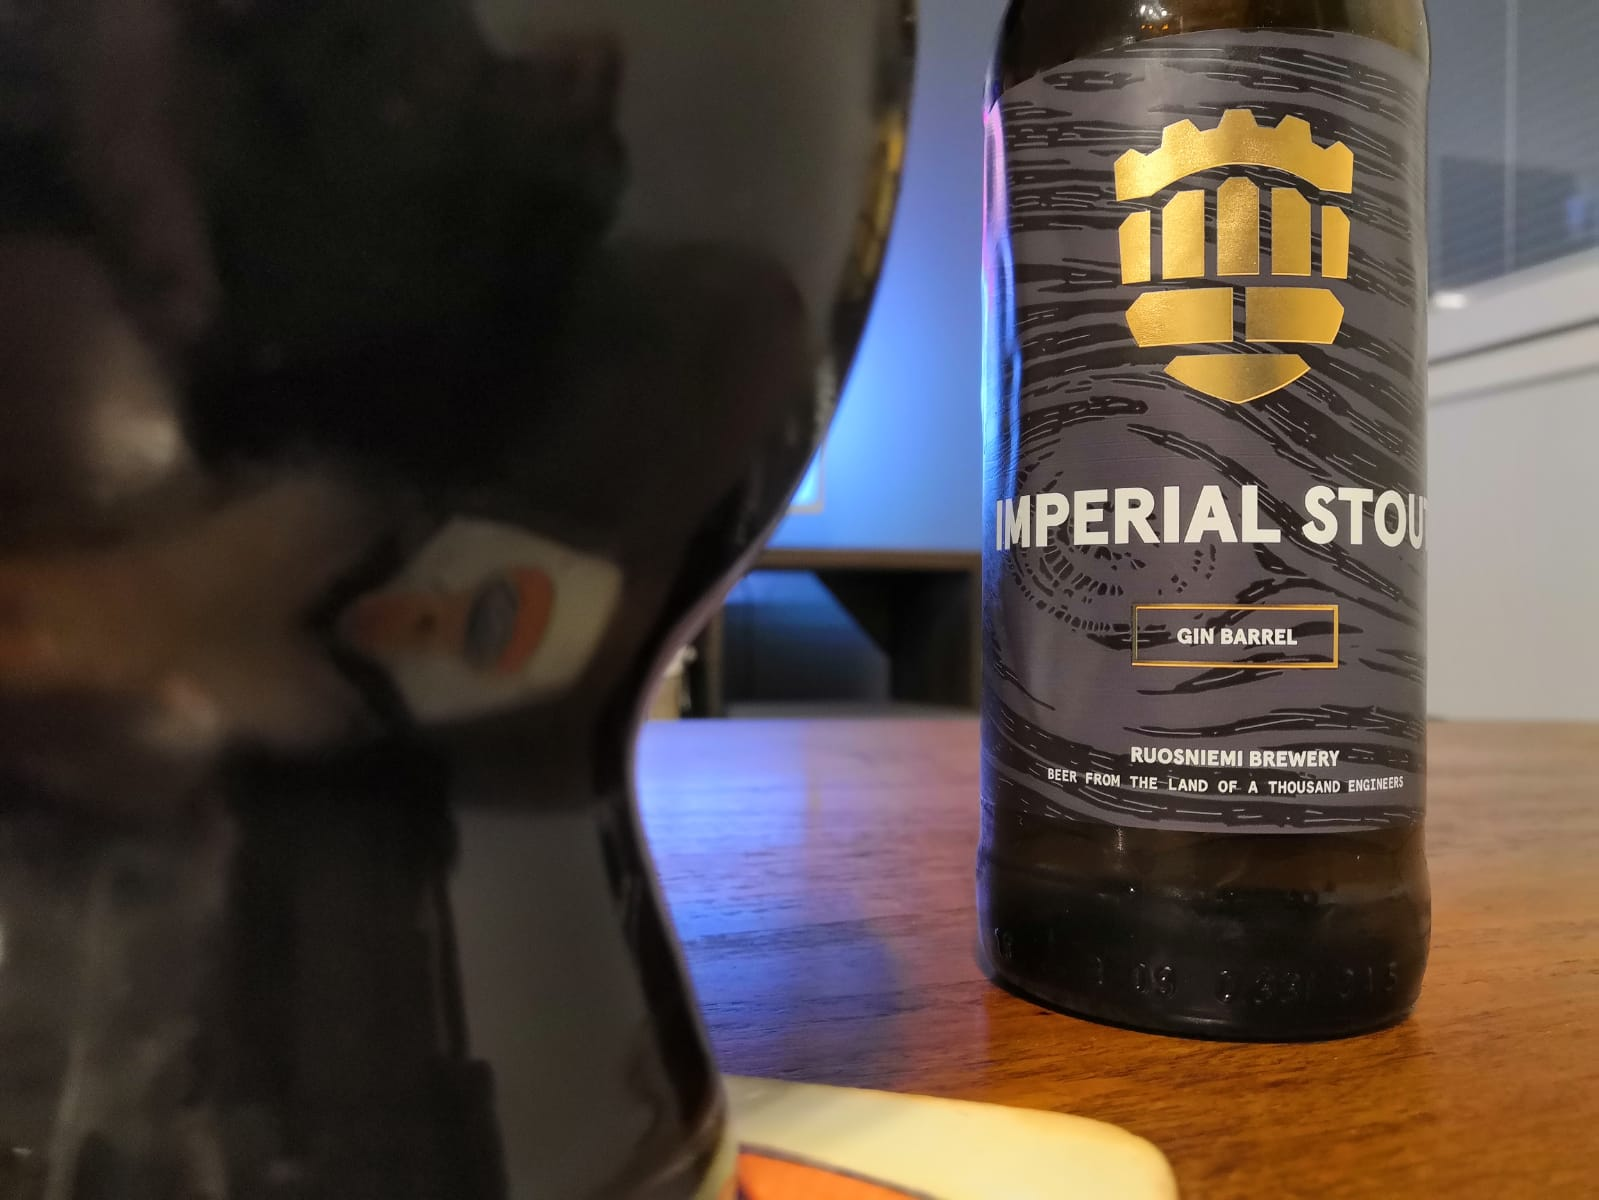 Imperial Stout Gin Barrel 0,33l 10%